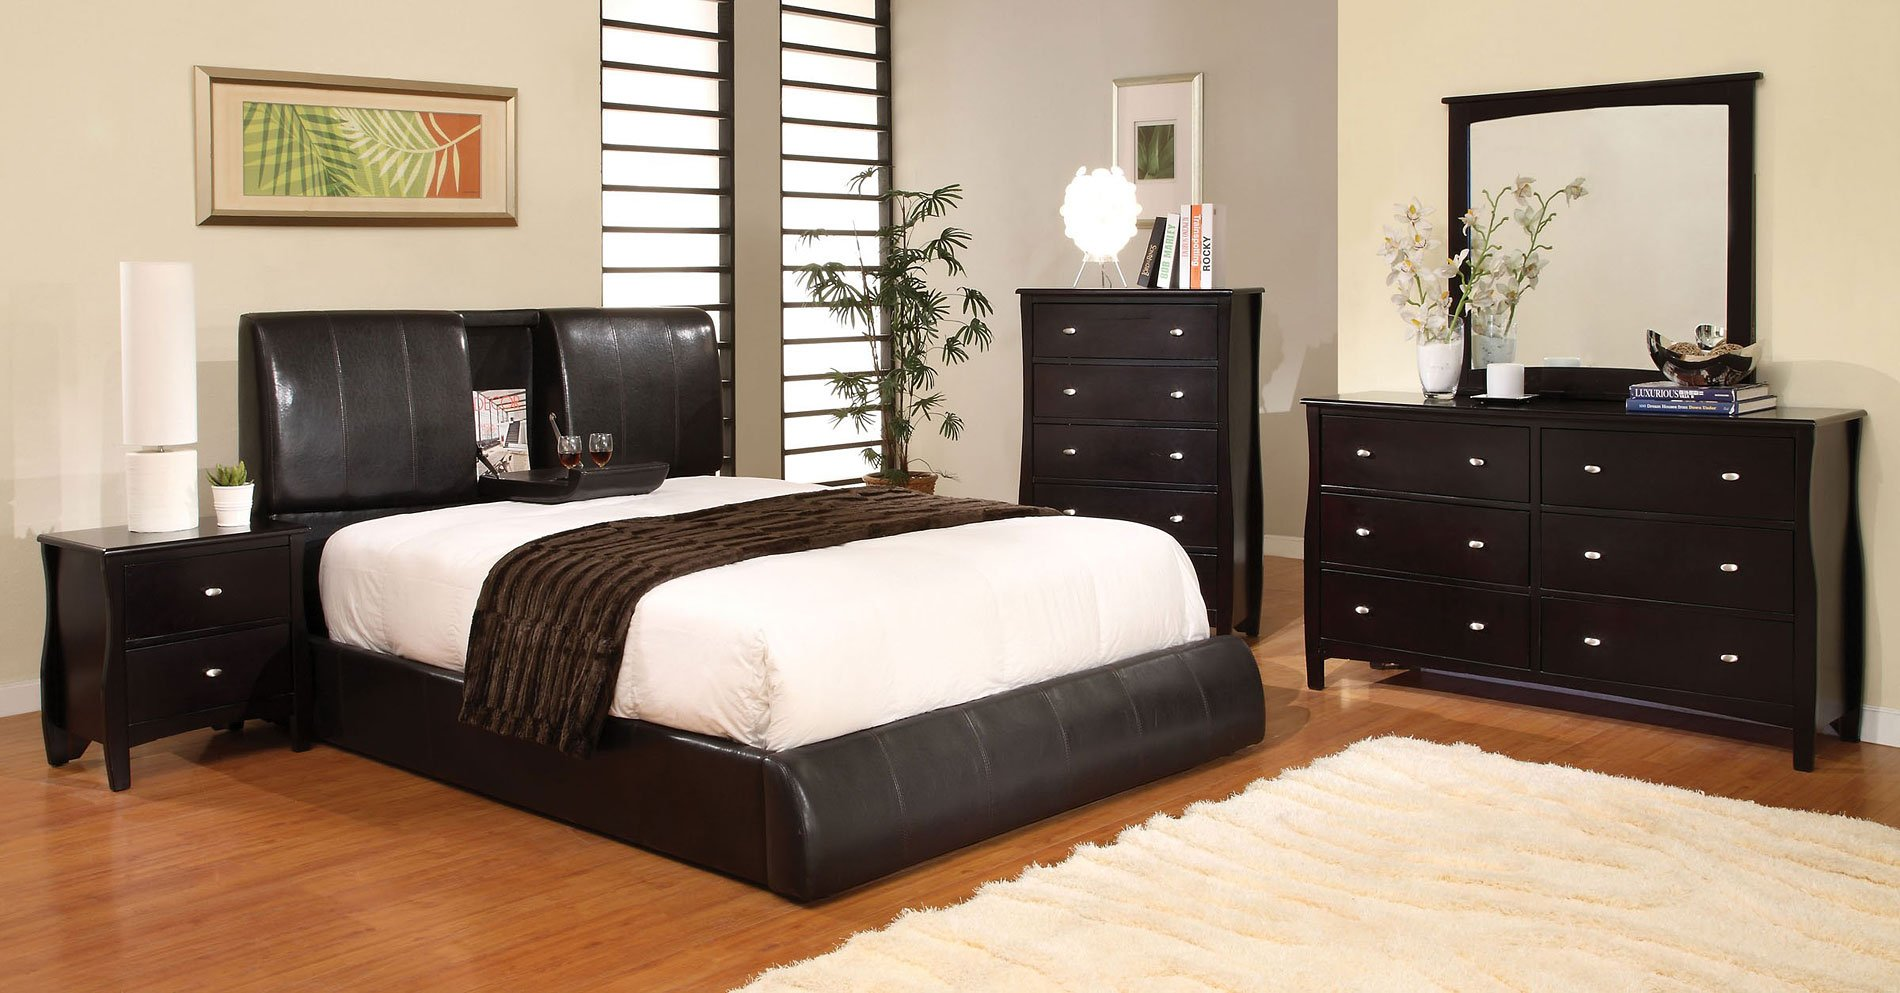 Milano Bedroom Set W/ Webster Upholstered Bed